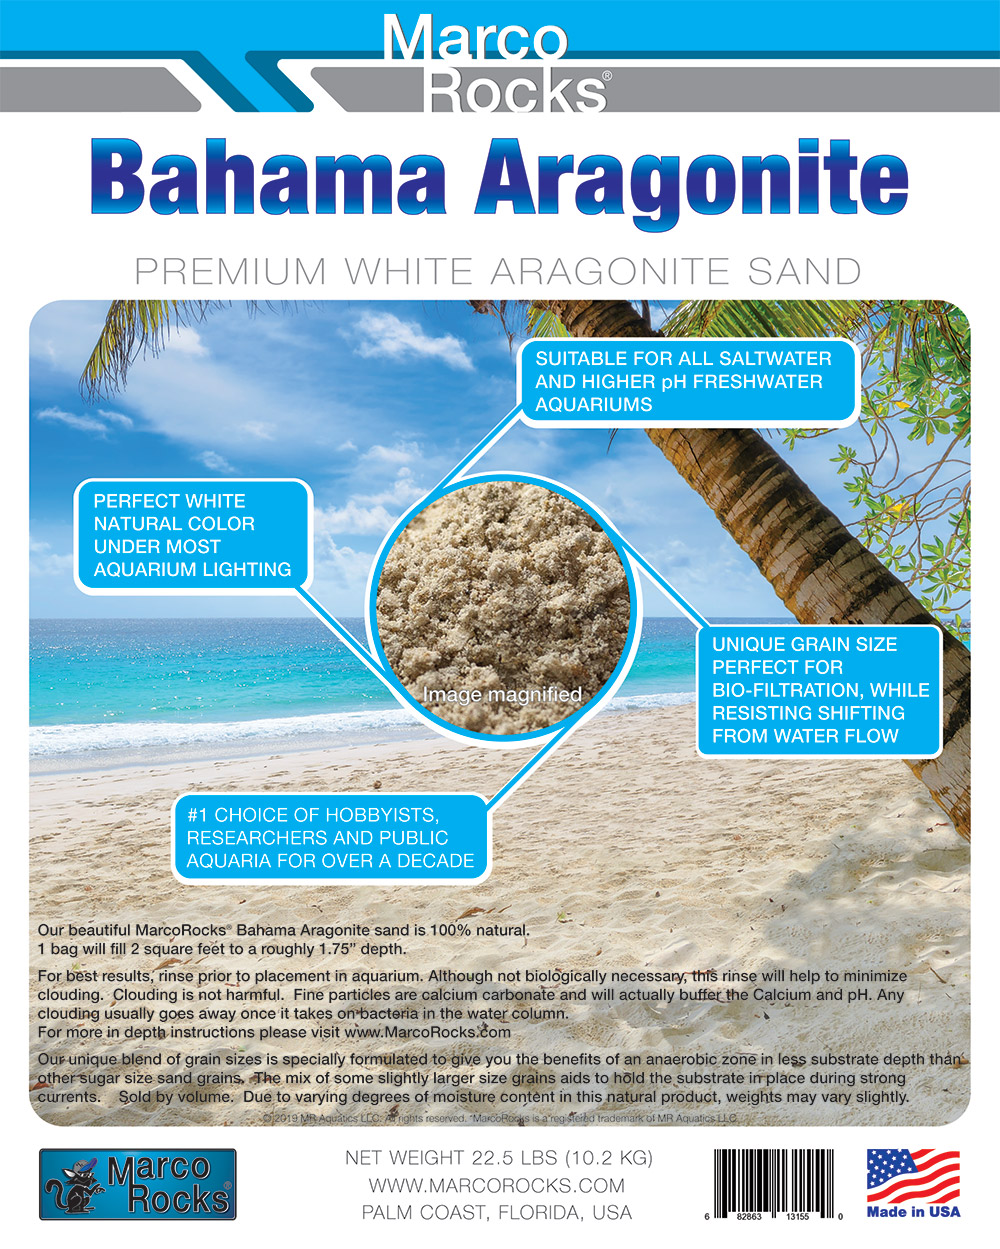 Bahama Aragonite Product Label